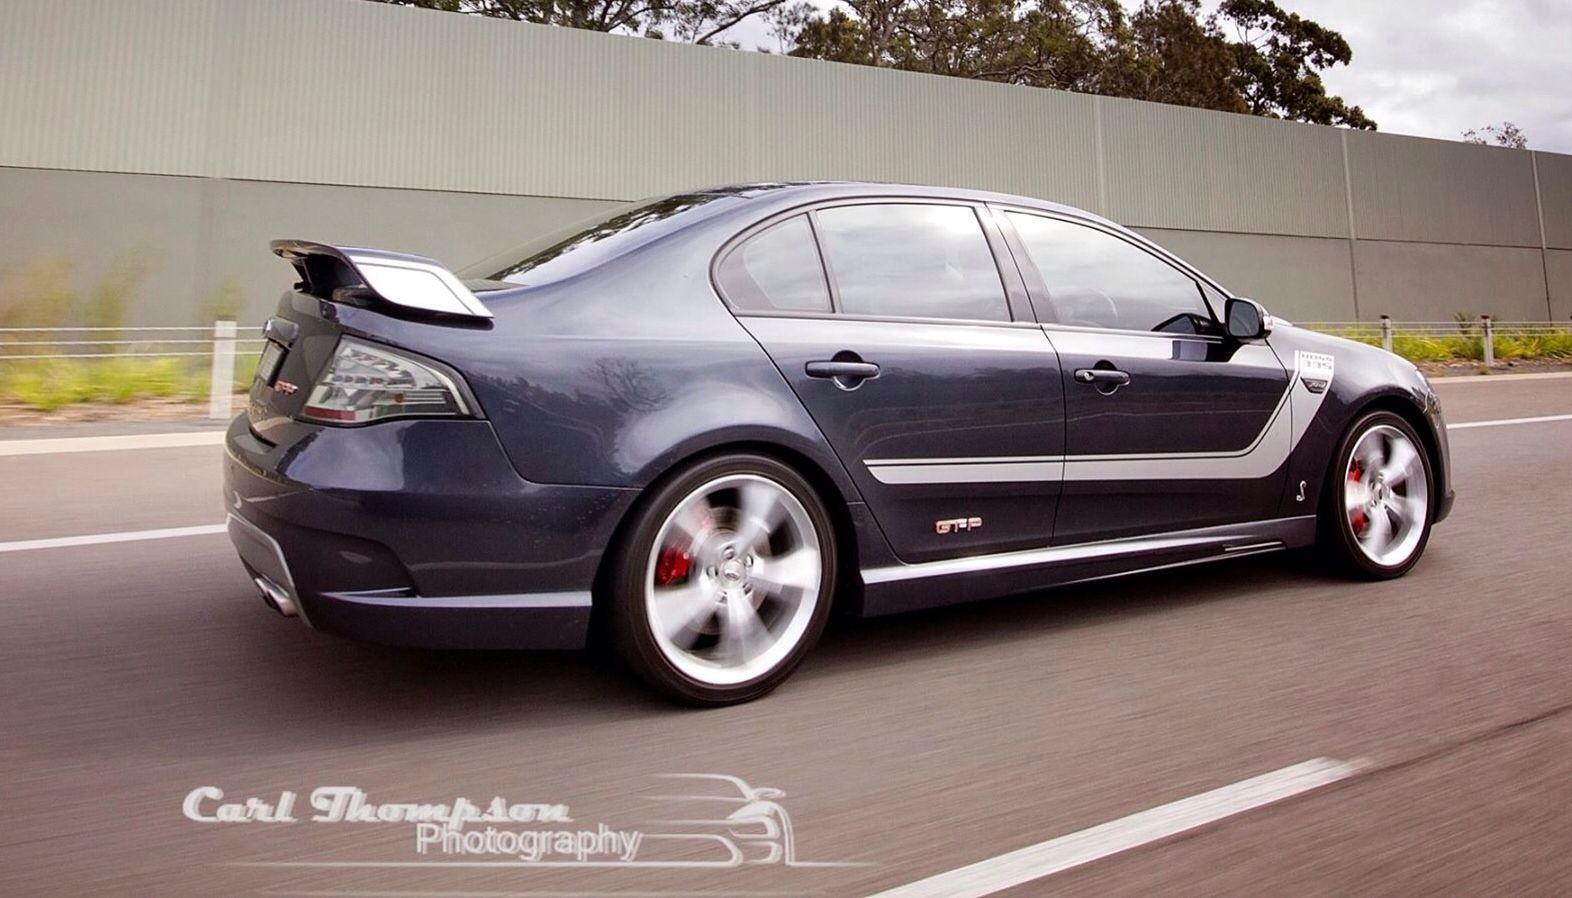 GTP out with Coffs Ford club